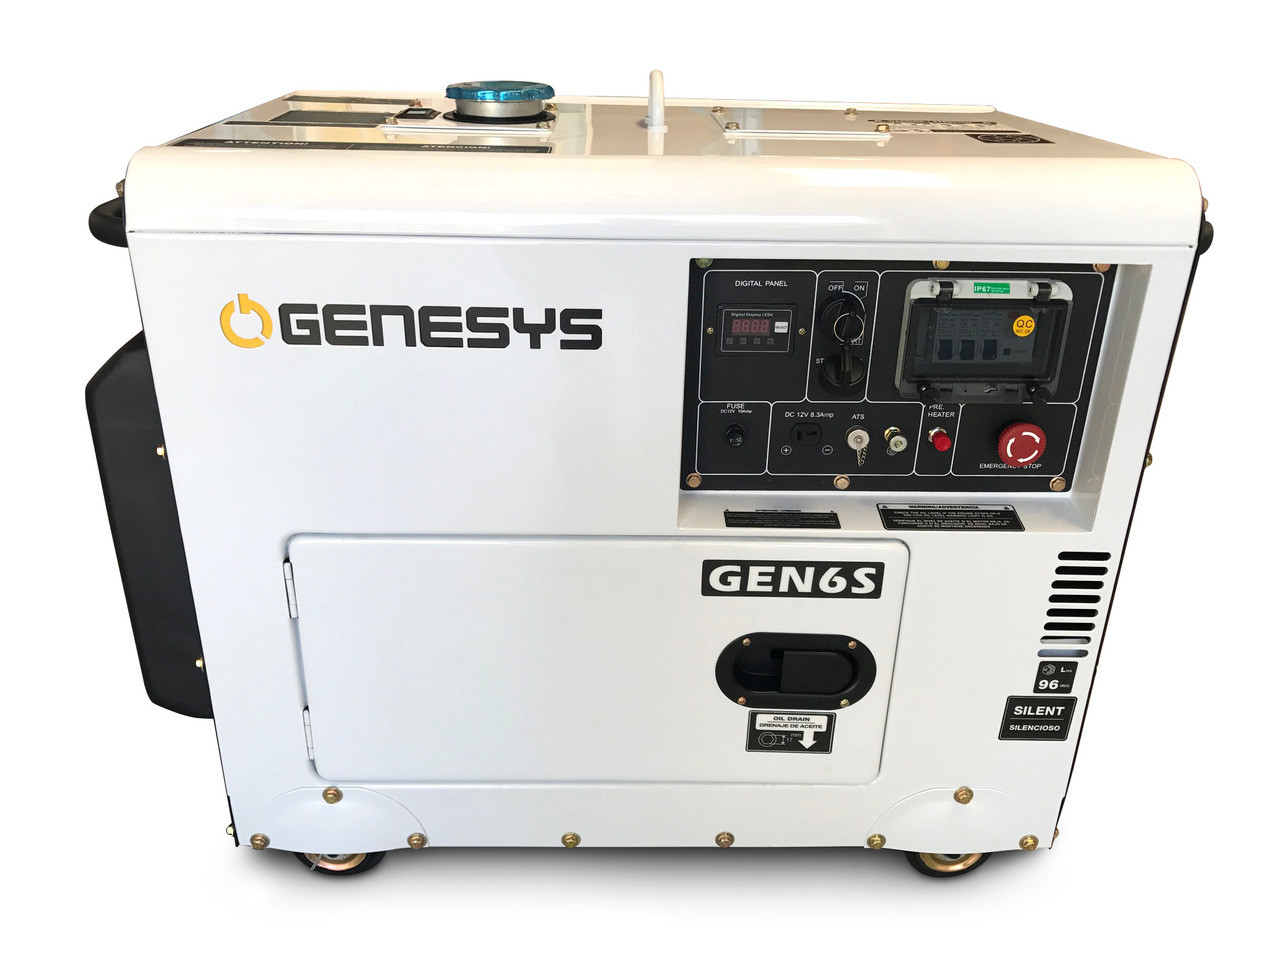 Portable diesel generator designed for trade who require reliable power source